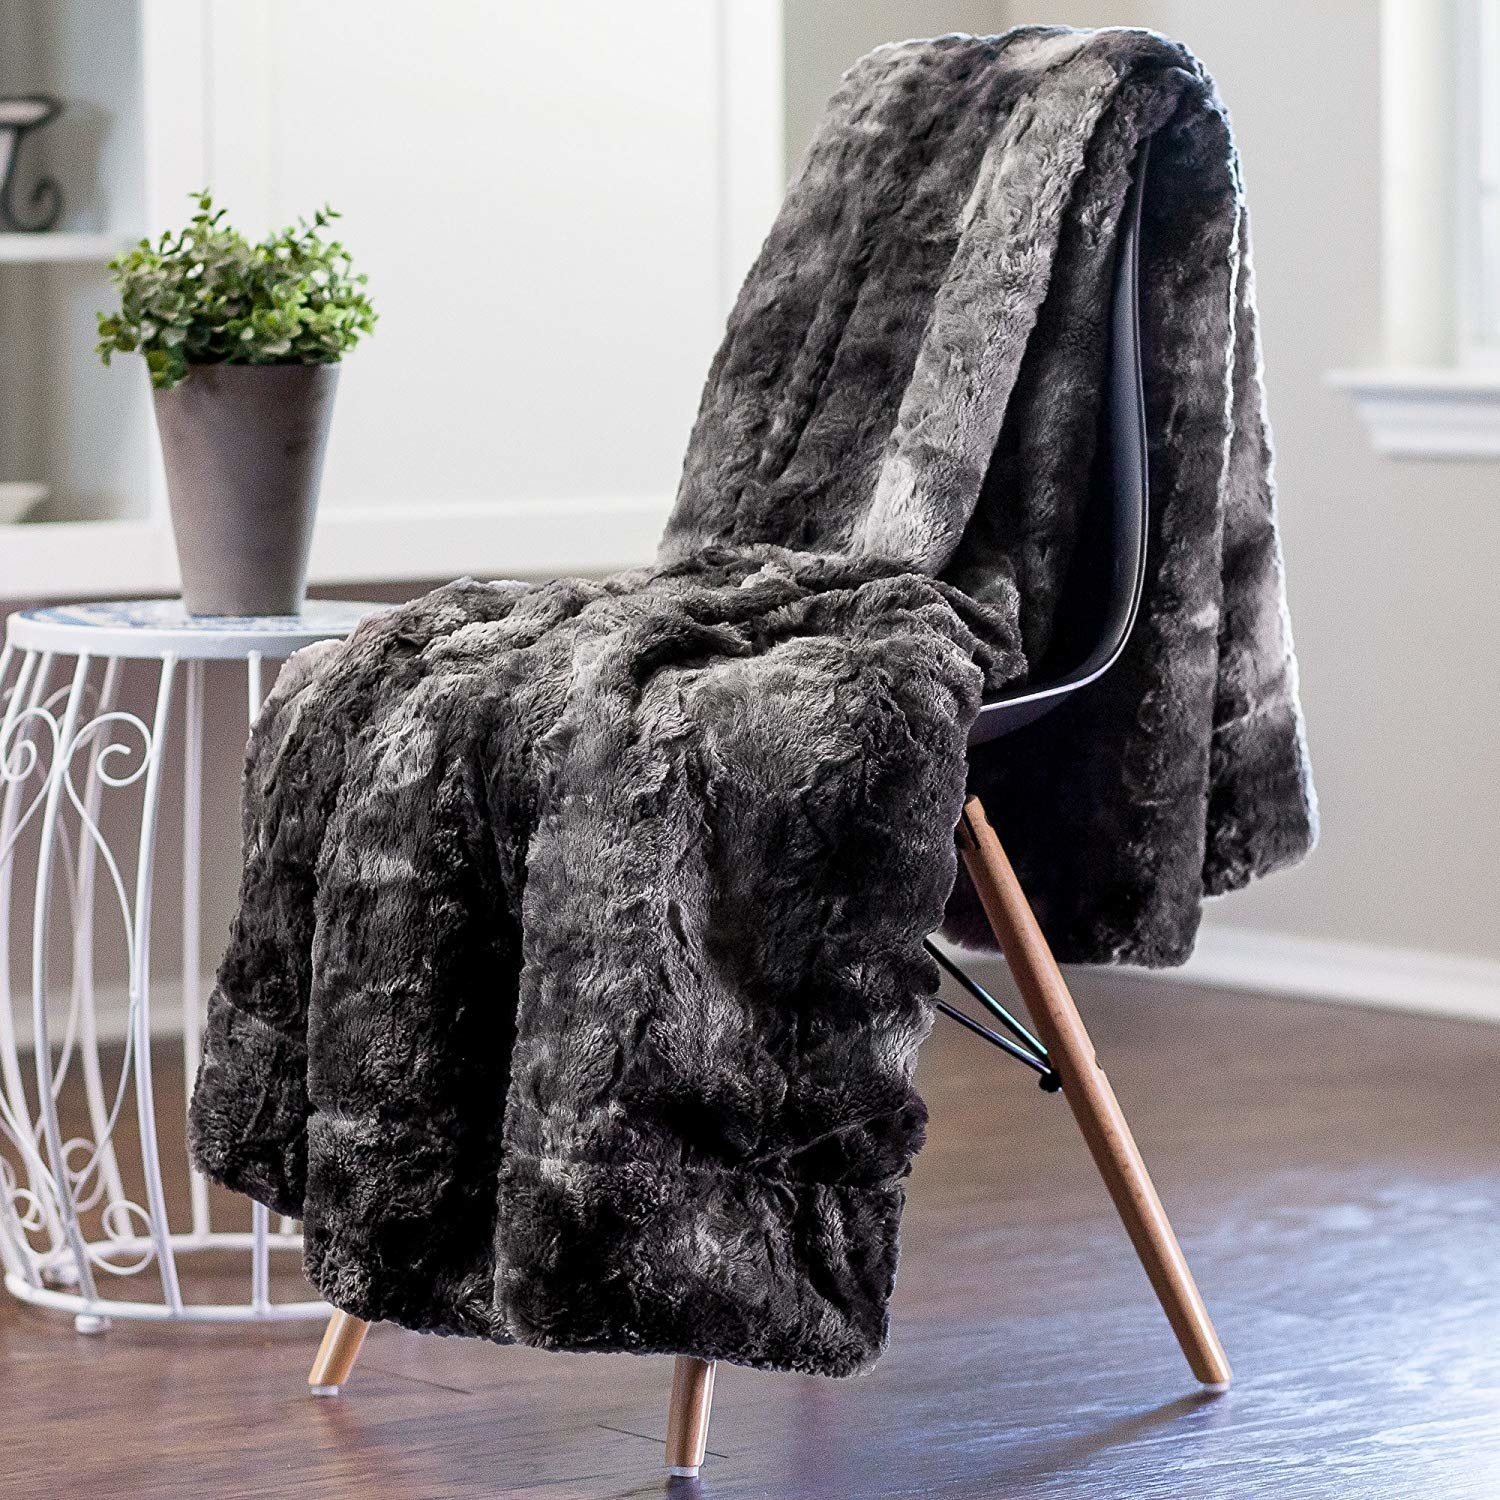 A super fuzzy throw in mottled greys draped across a chair